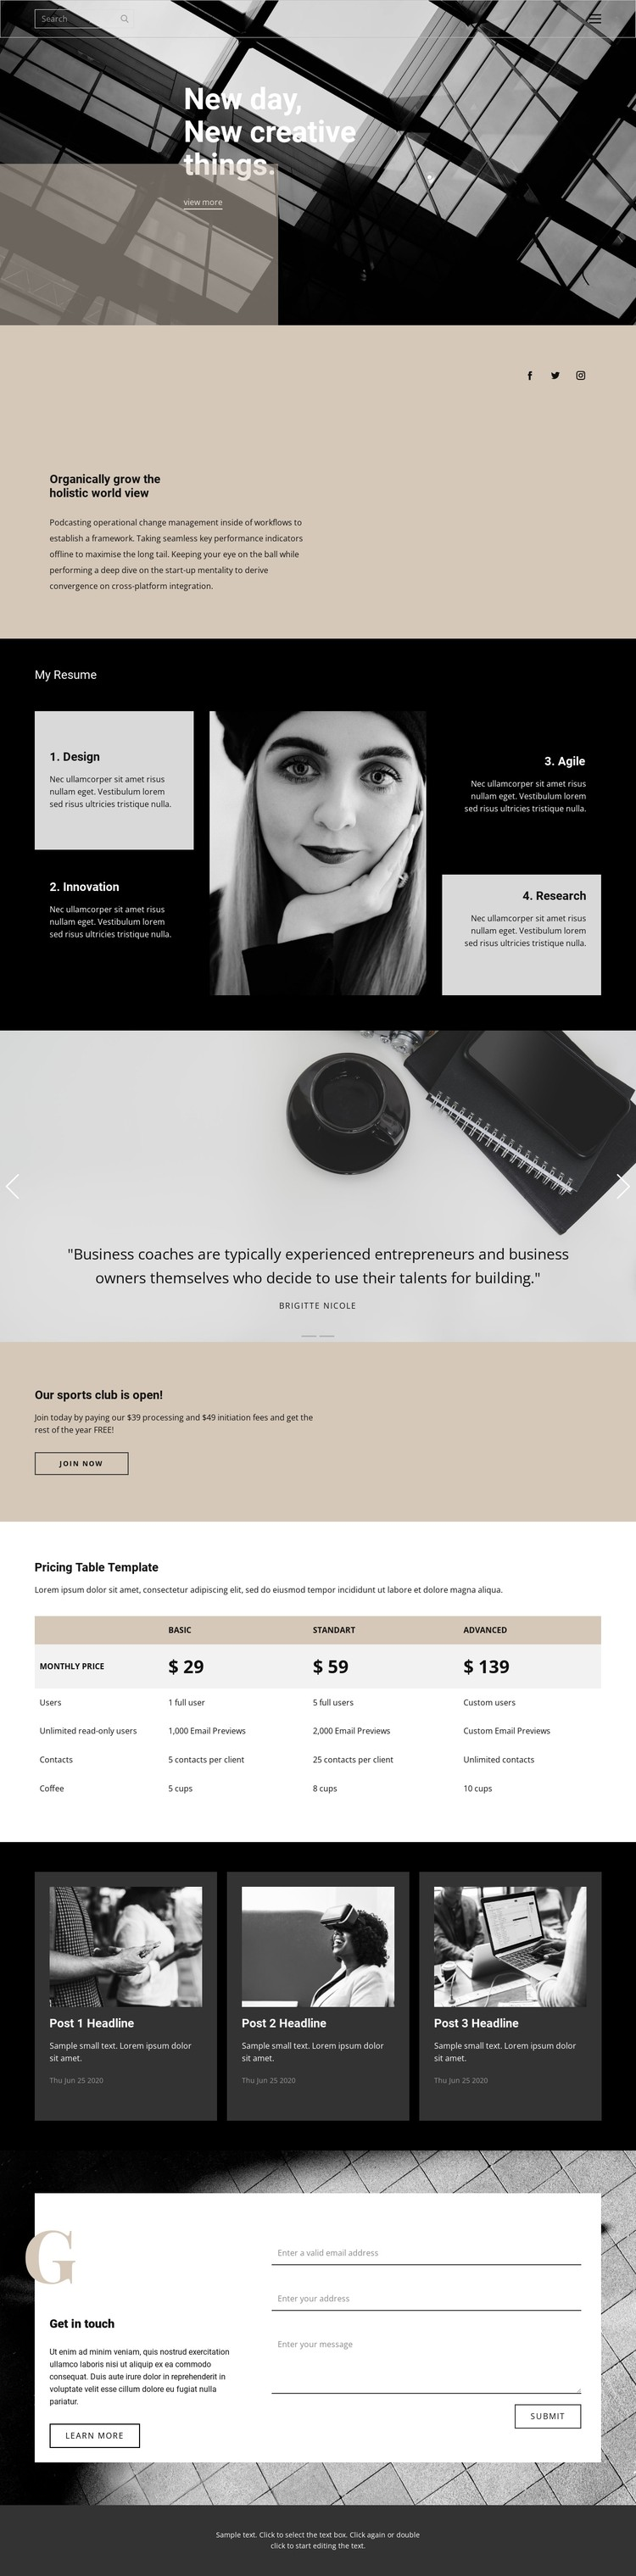 Where to start a business CSS Template